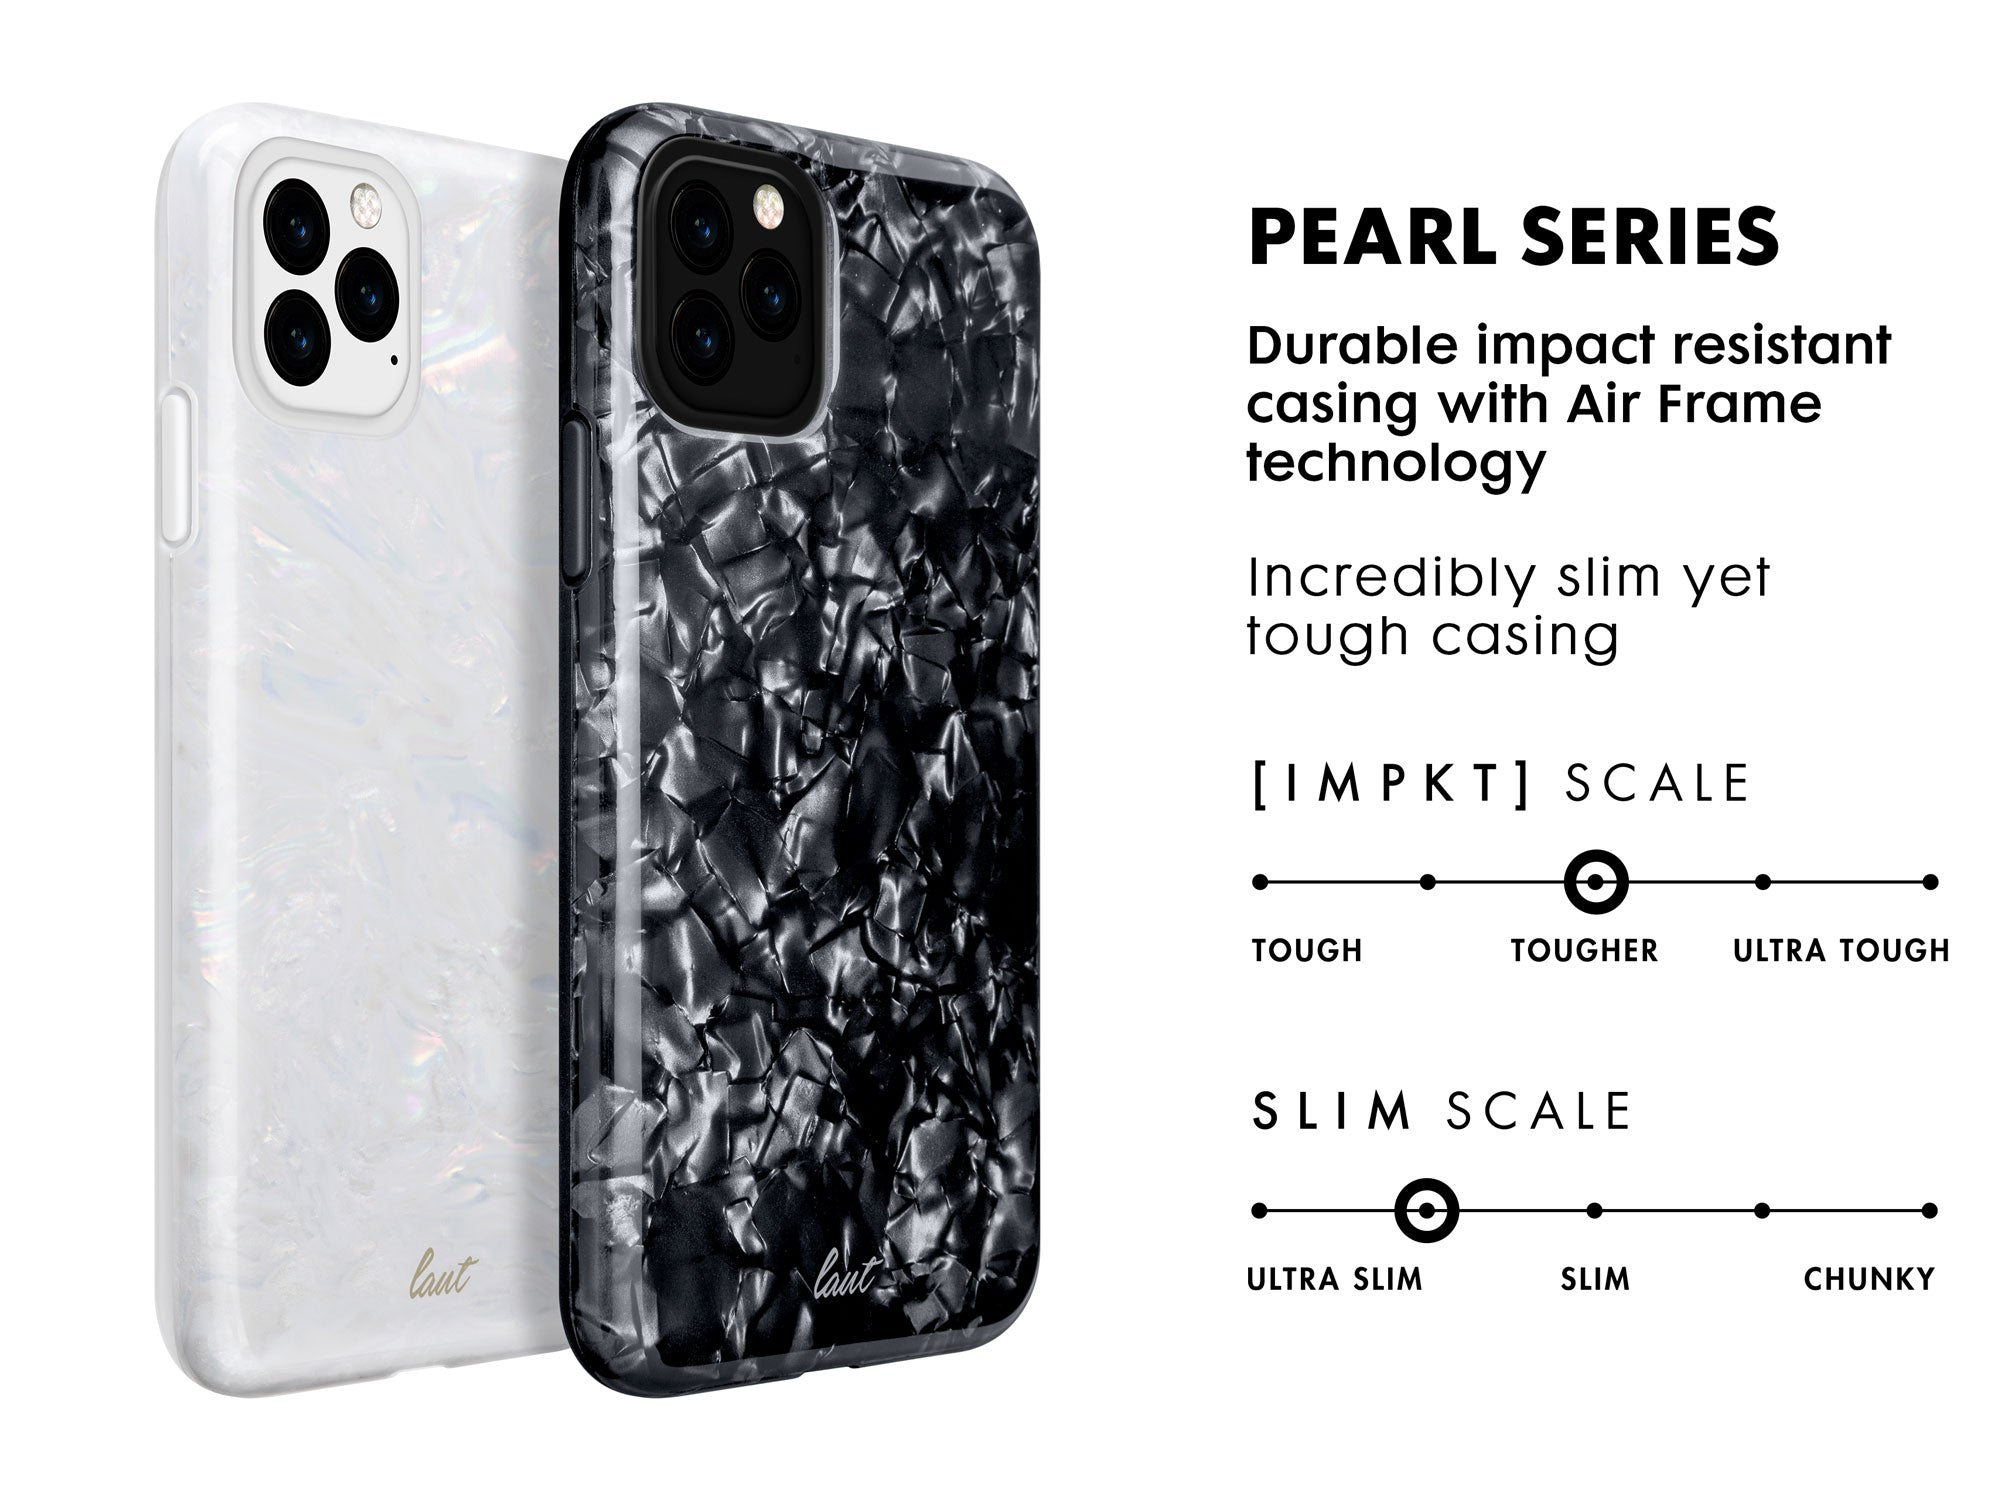 PEARL for iPhone 11 series